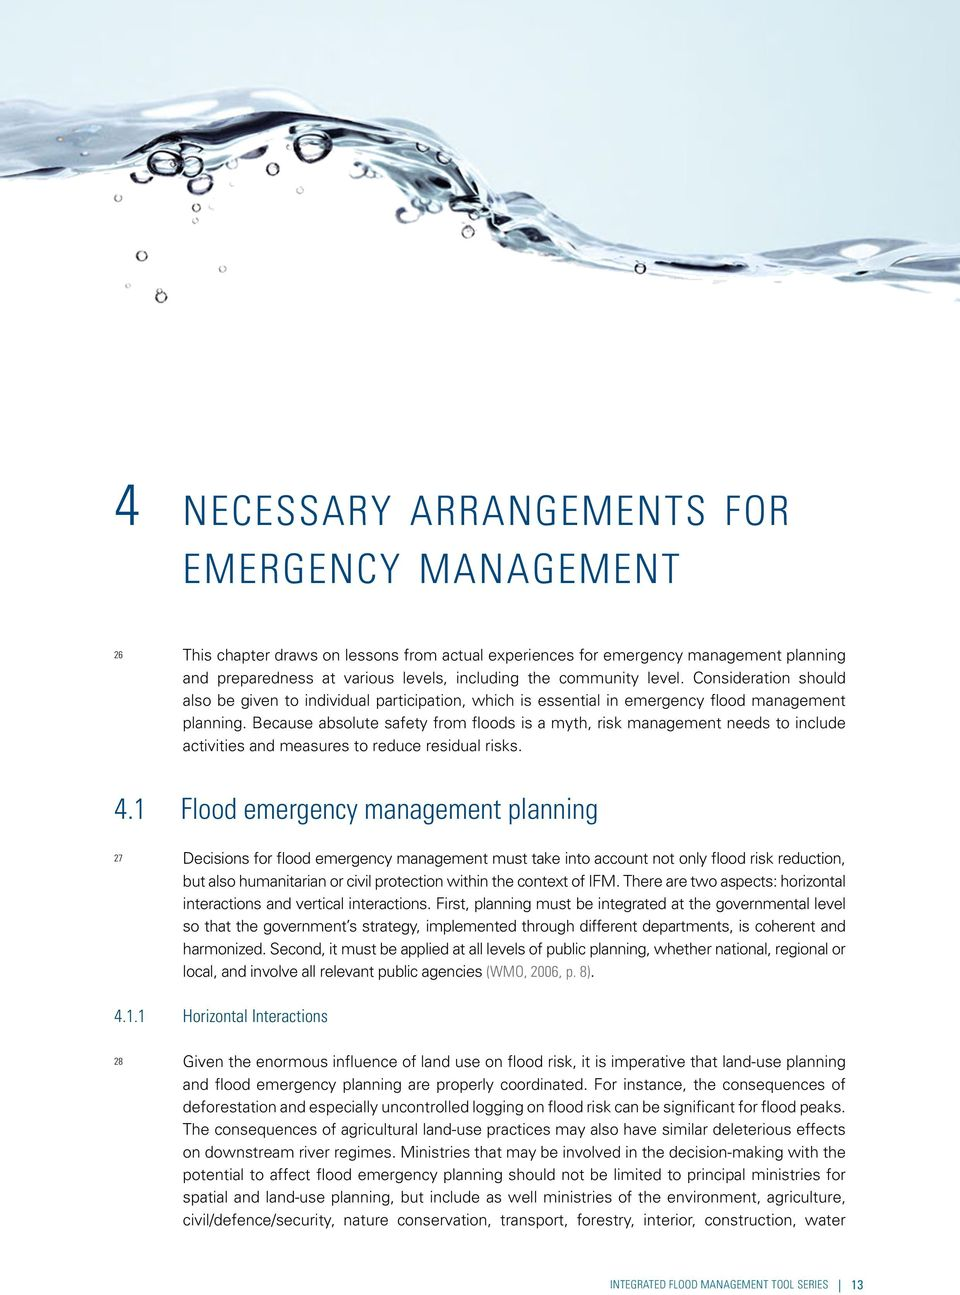 Because absolute safety from floods is a myth, risk management needs to include activities and measures to reduce residual risks. 4.